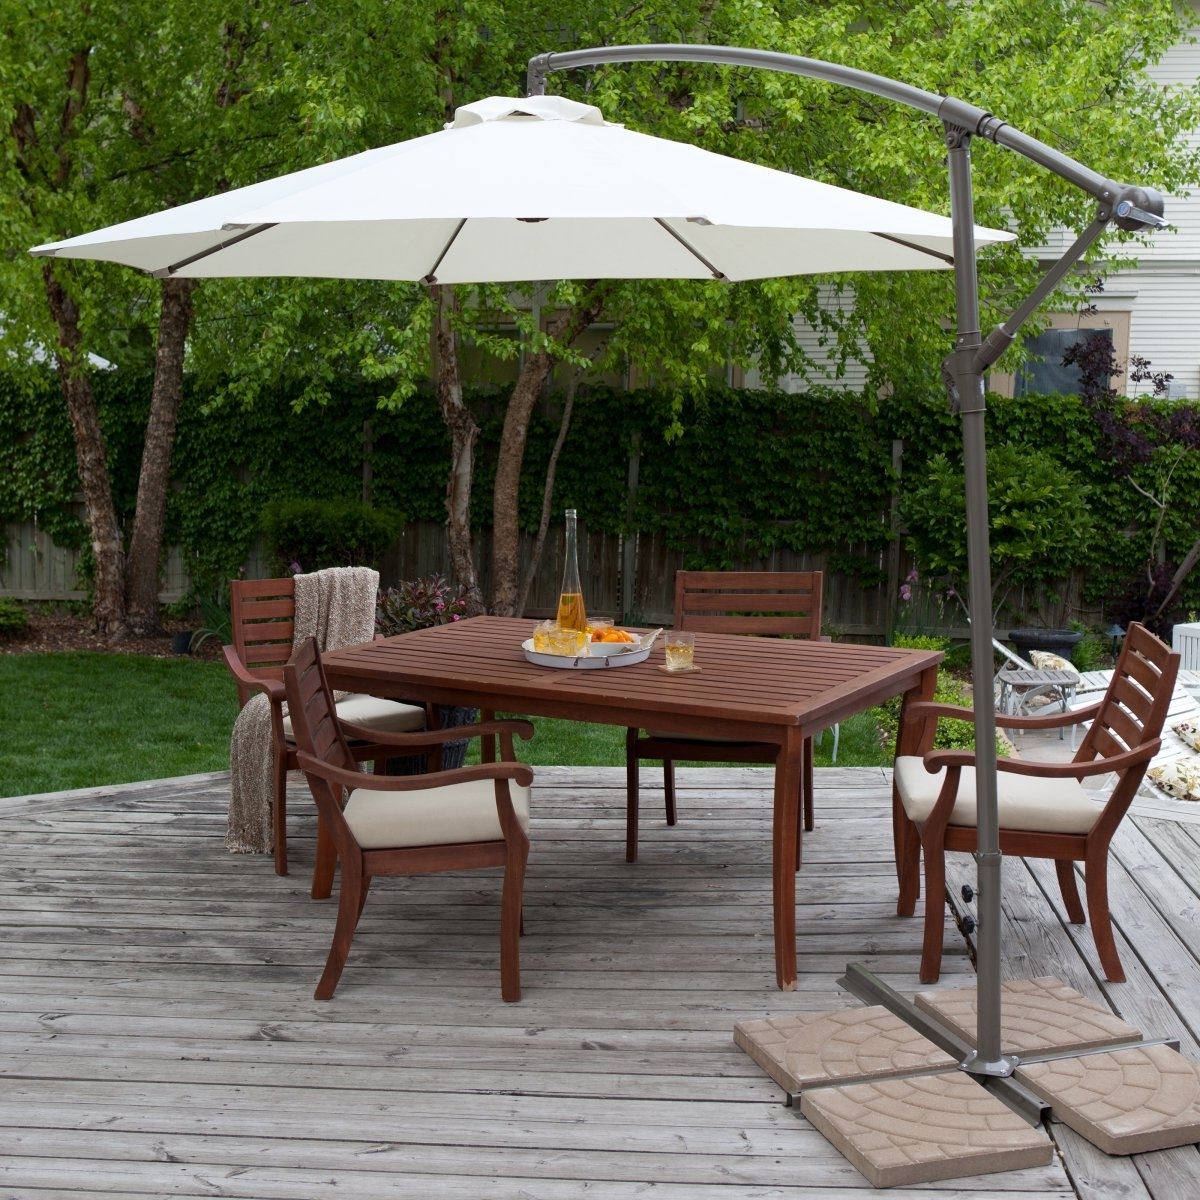 Most Popular The Patio Table Umbrella For Comfort Gathering — Mistikcamping Home With Regard To Patio Umbrellas For Tables (View 12 of 20)